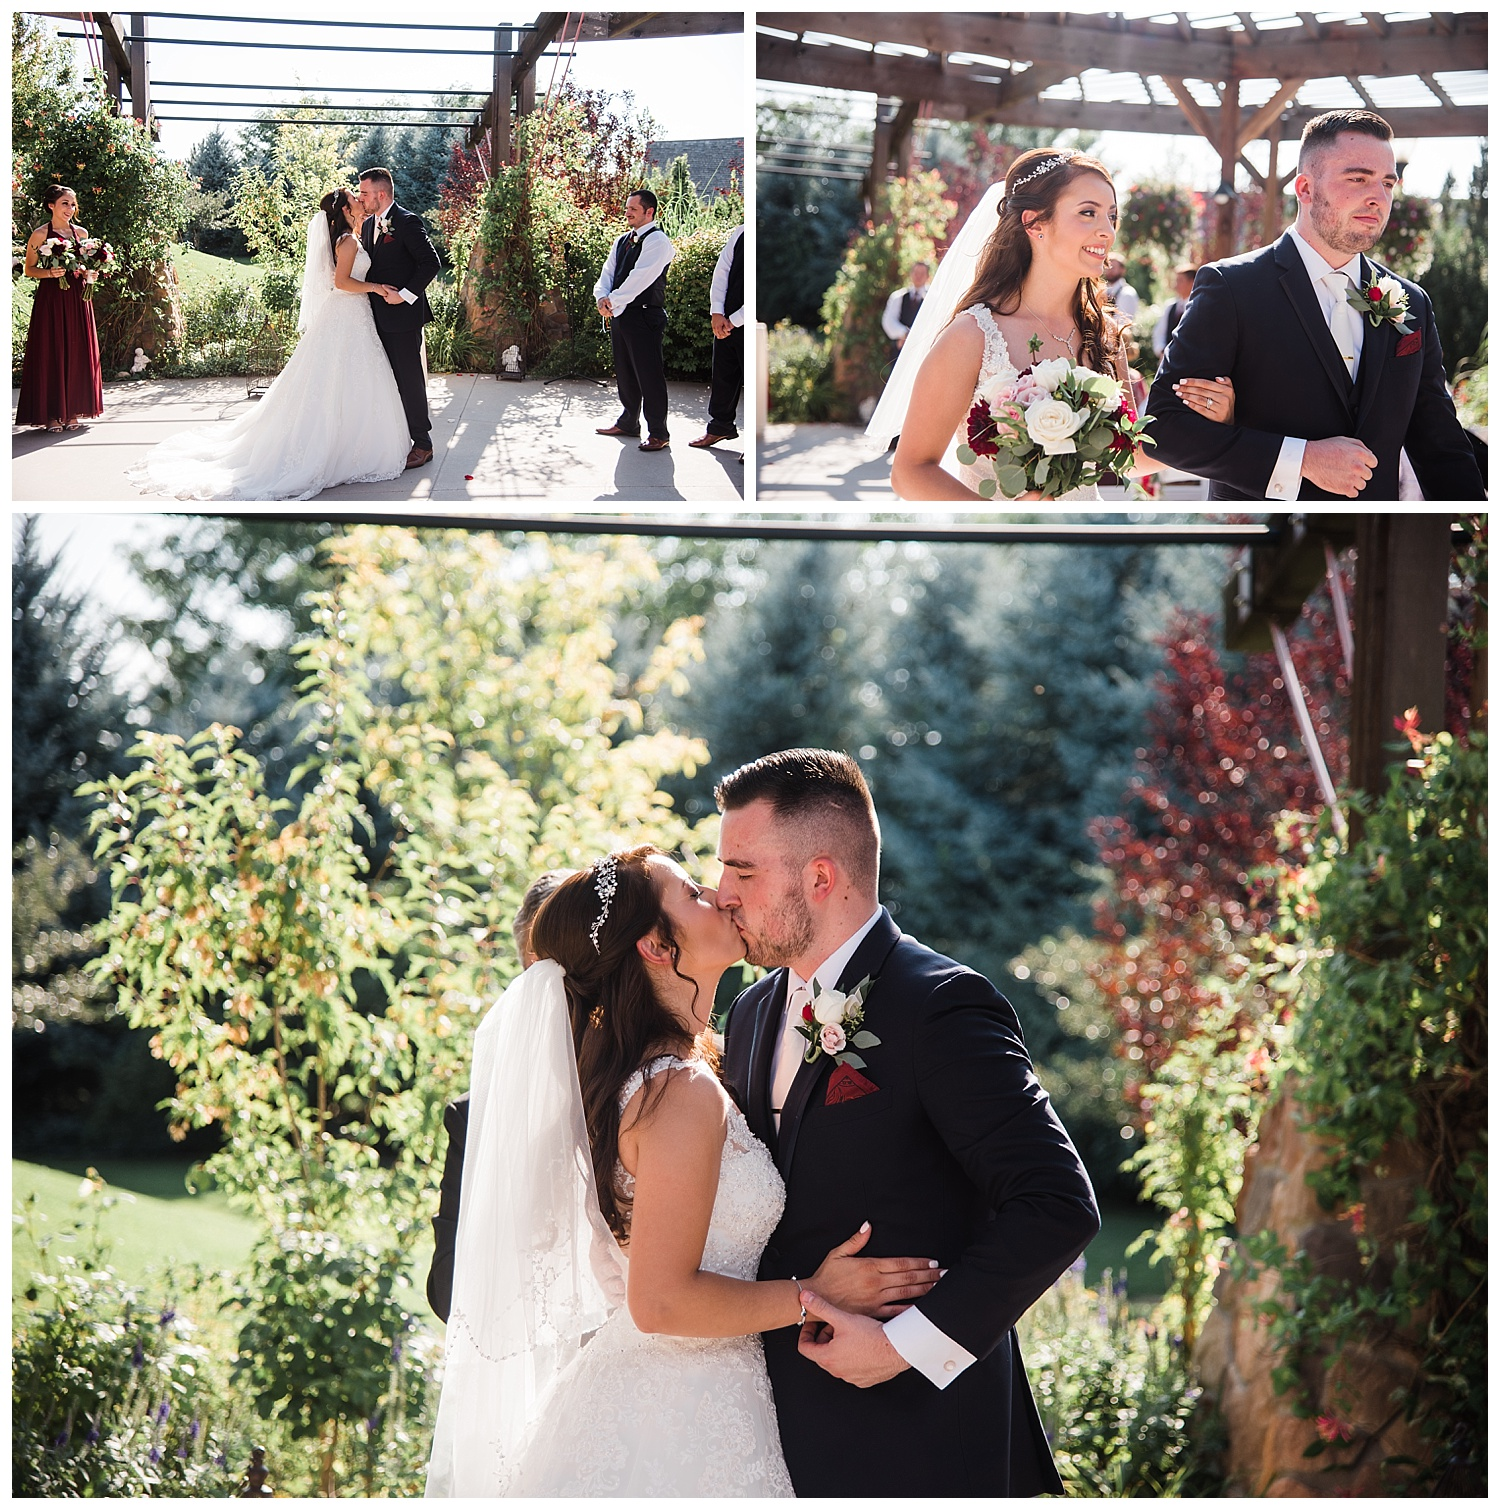 Brookside_Gardens_Colorado_Wedding_Photography_Apollo_Fields_17.jpg